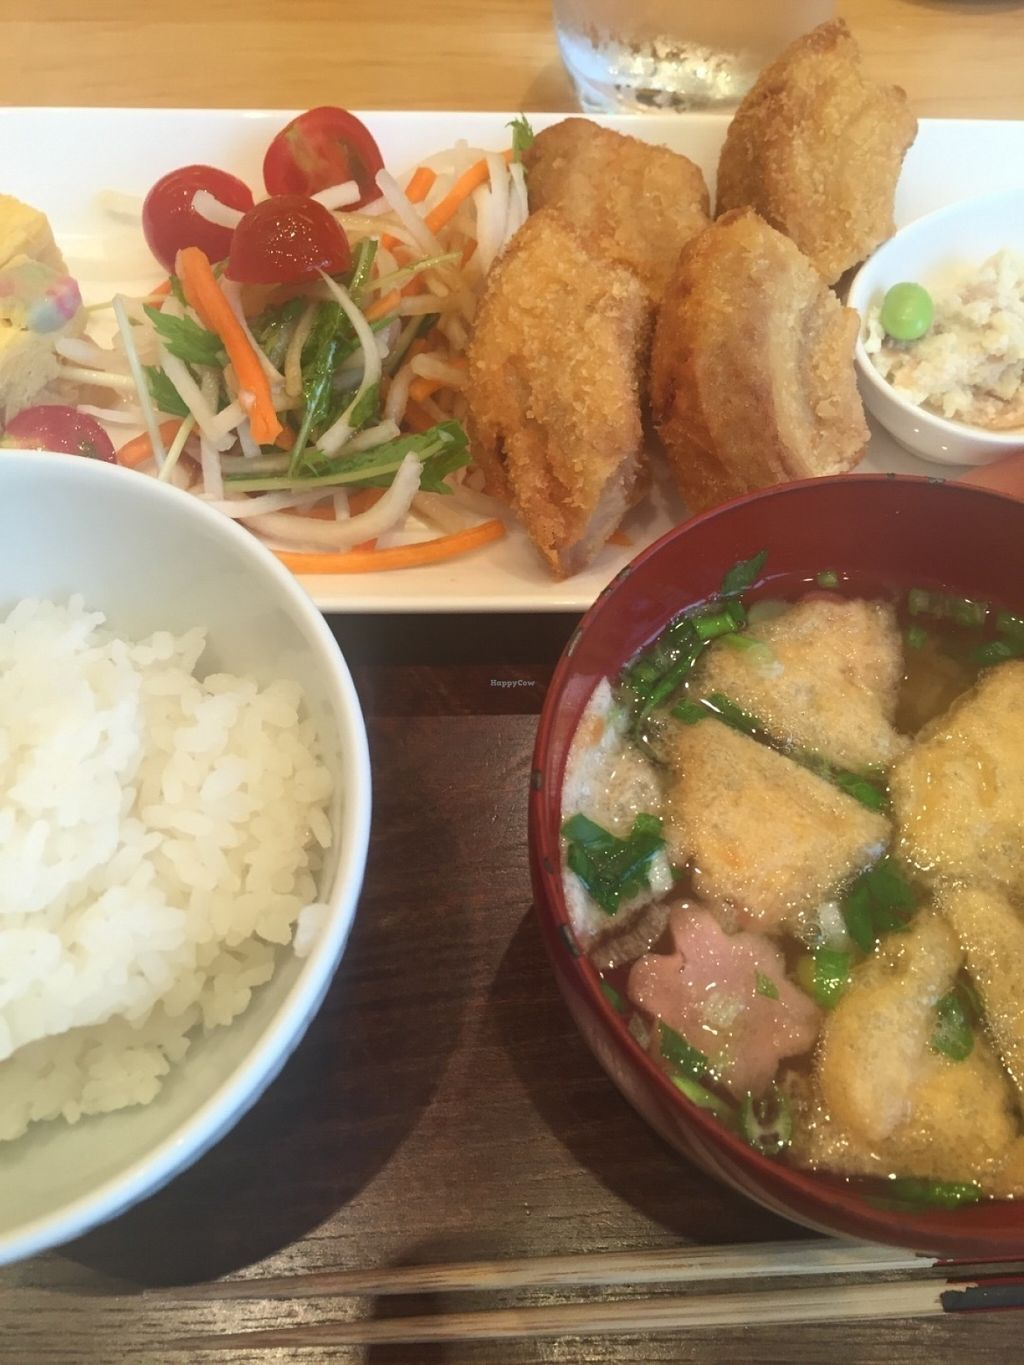 """Photo of Fumuroya Cafe   by <a href=""""/members/profile/Vegeiko"""">Vegeiko</a> <br/>Cutlet lunch set <br/> July 11, 2016  - <a href='/contact/abuse/image/76418/159120'>Report</a>"""